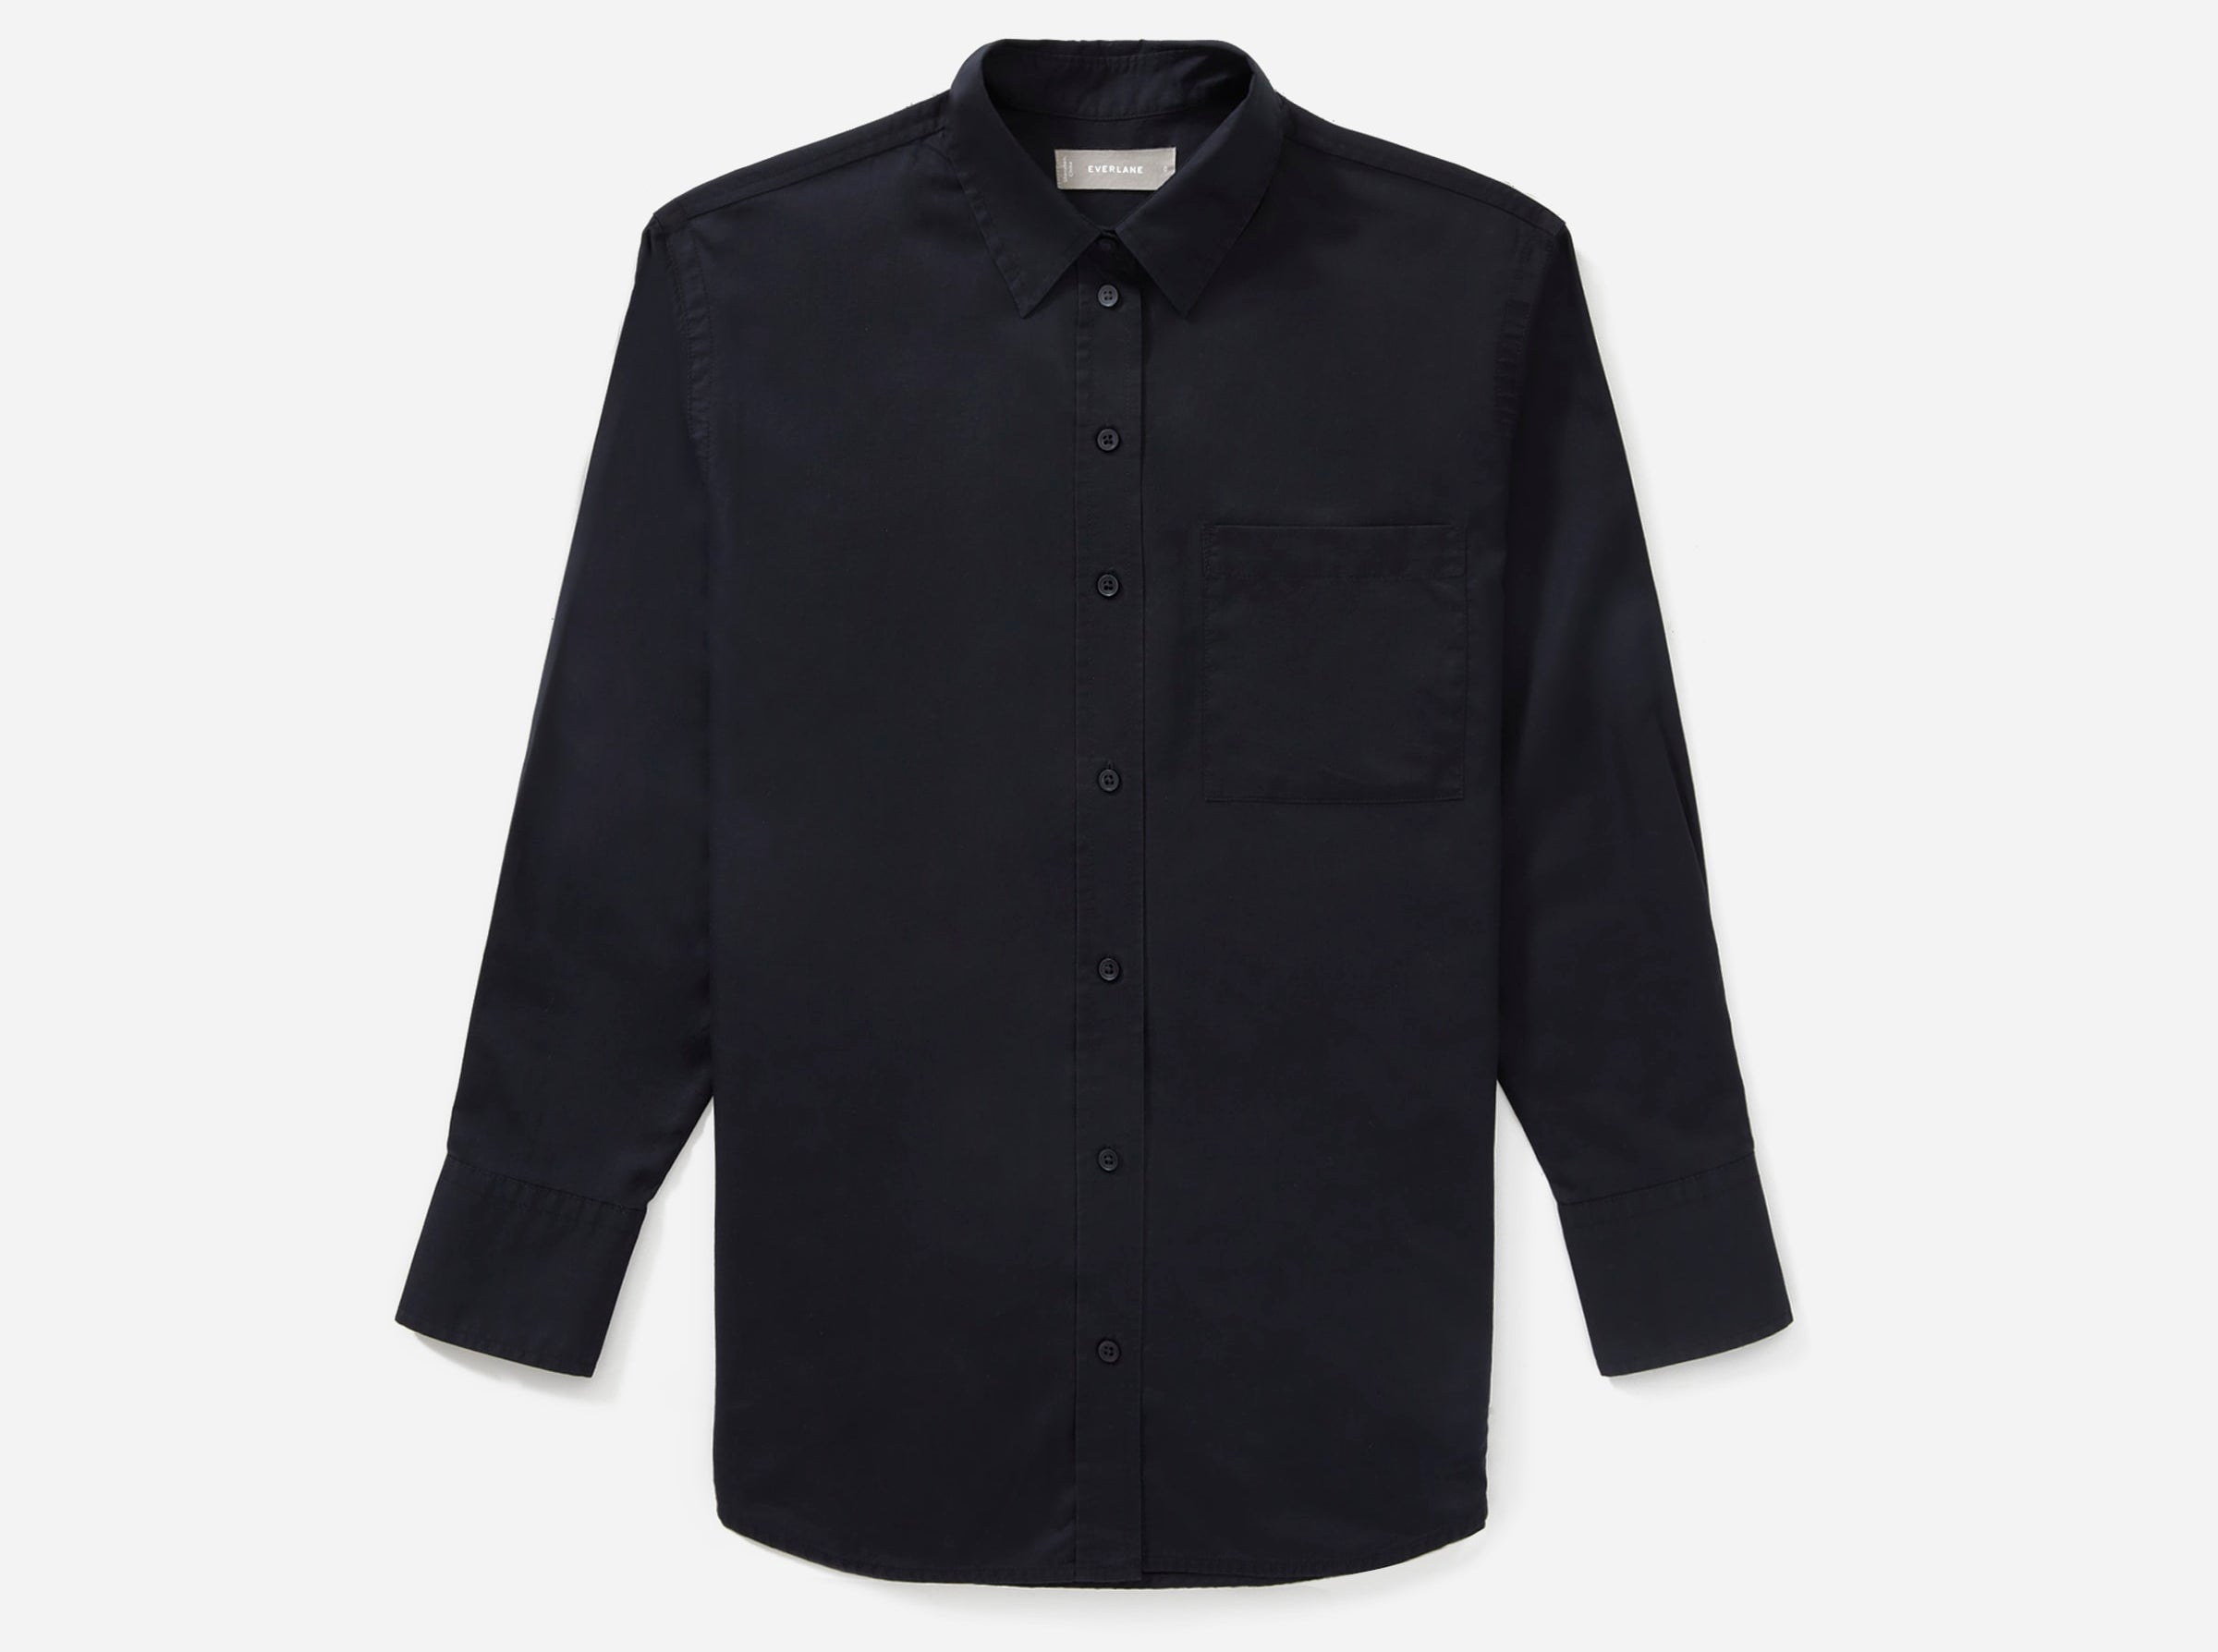 Everlane - Silky cotton oversized classic black button-up shirt